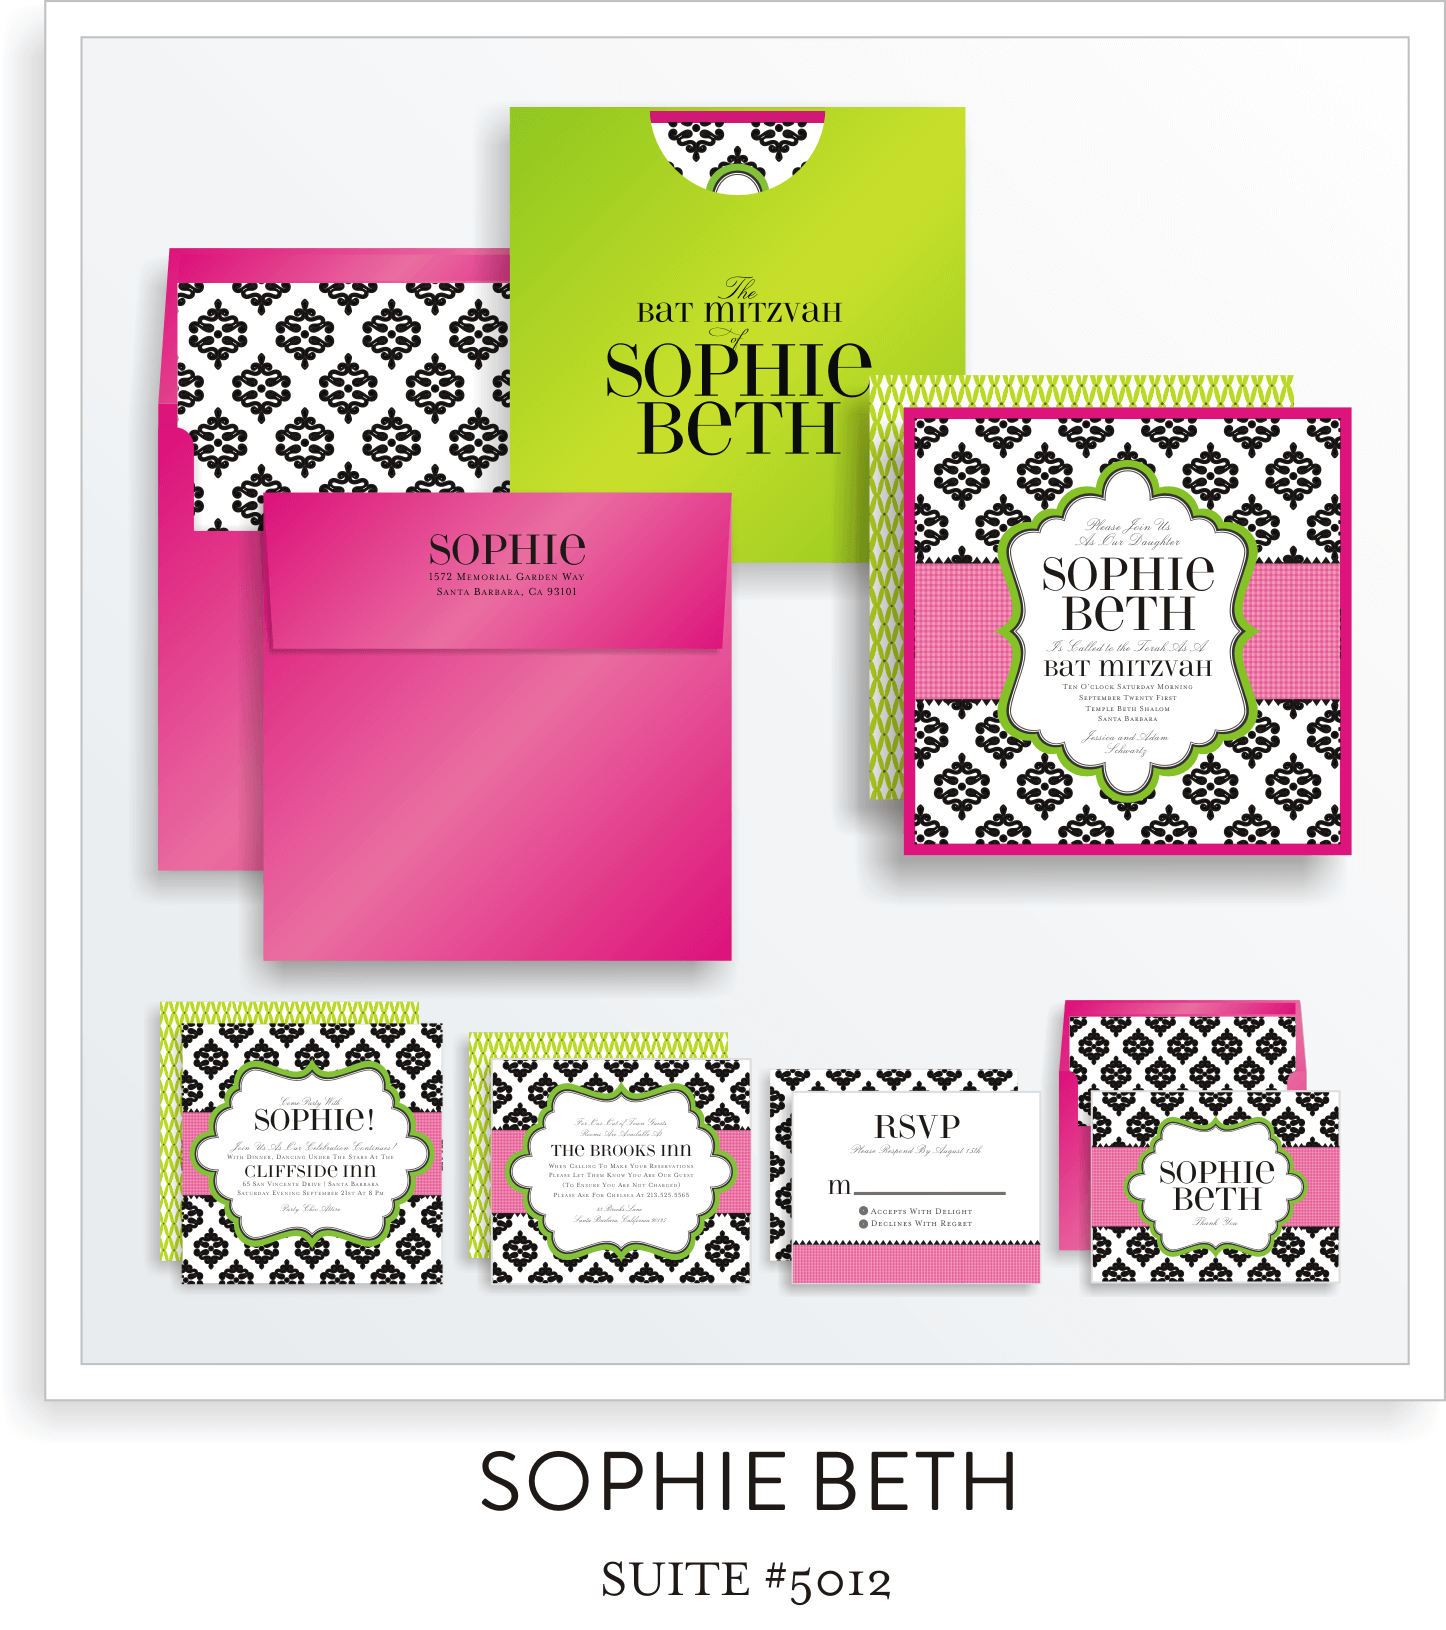 Bat Mitzvah Invitation Suite 5012 - Sophie Beth